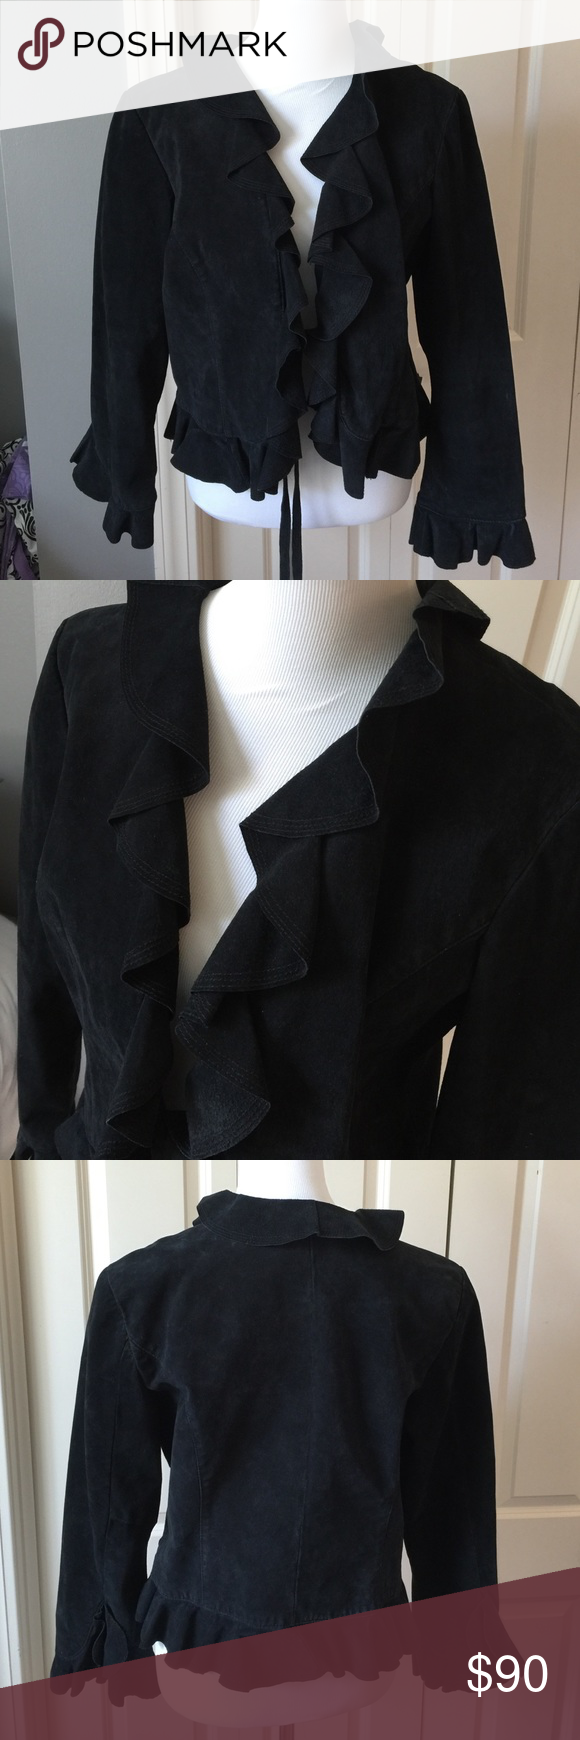 Black Leather Swing Jacket Fully lined. Ruffled front and cuffs. 100% leather Live a Little Jackets & Coats